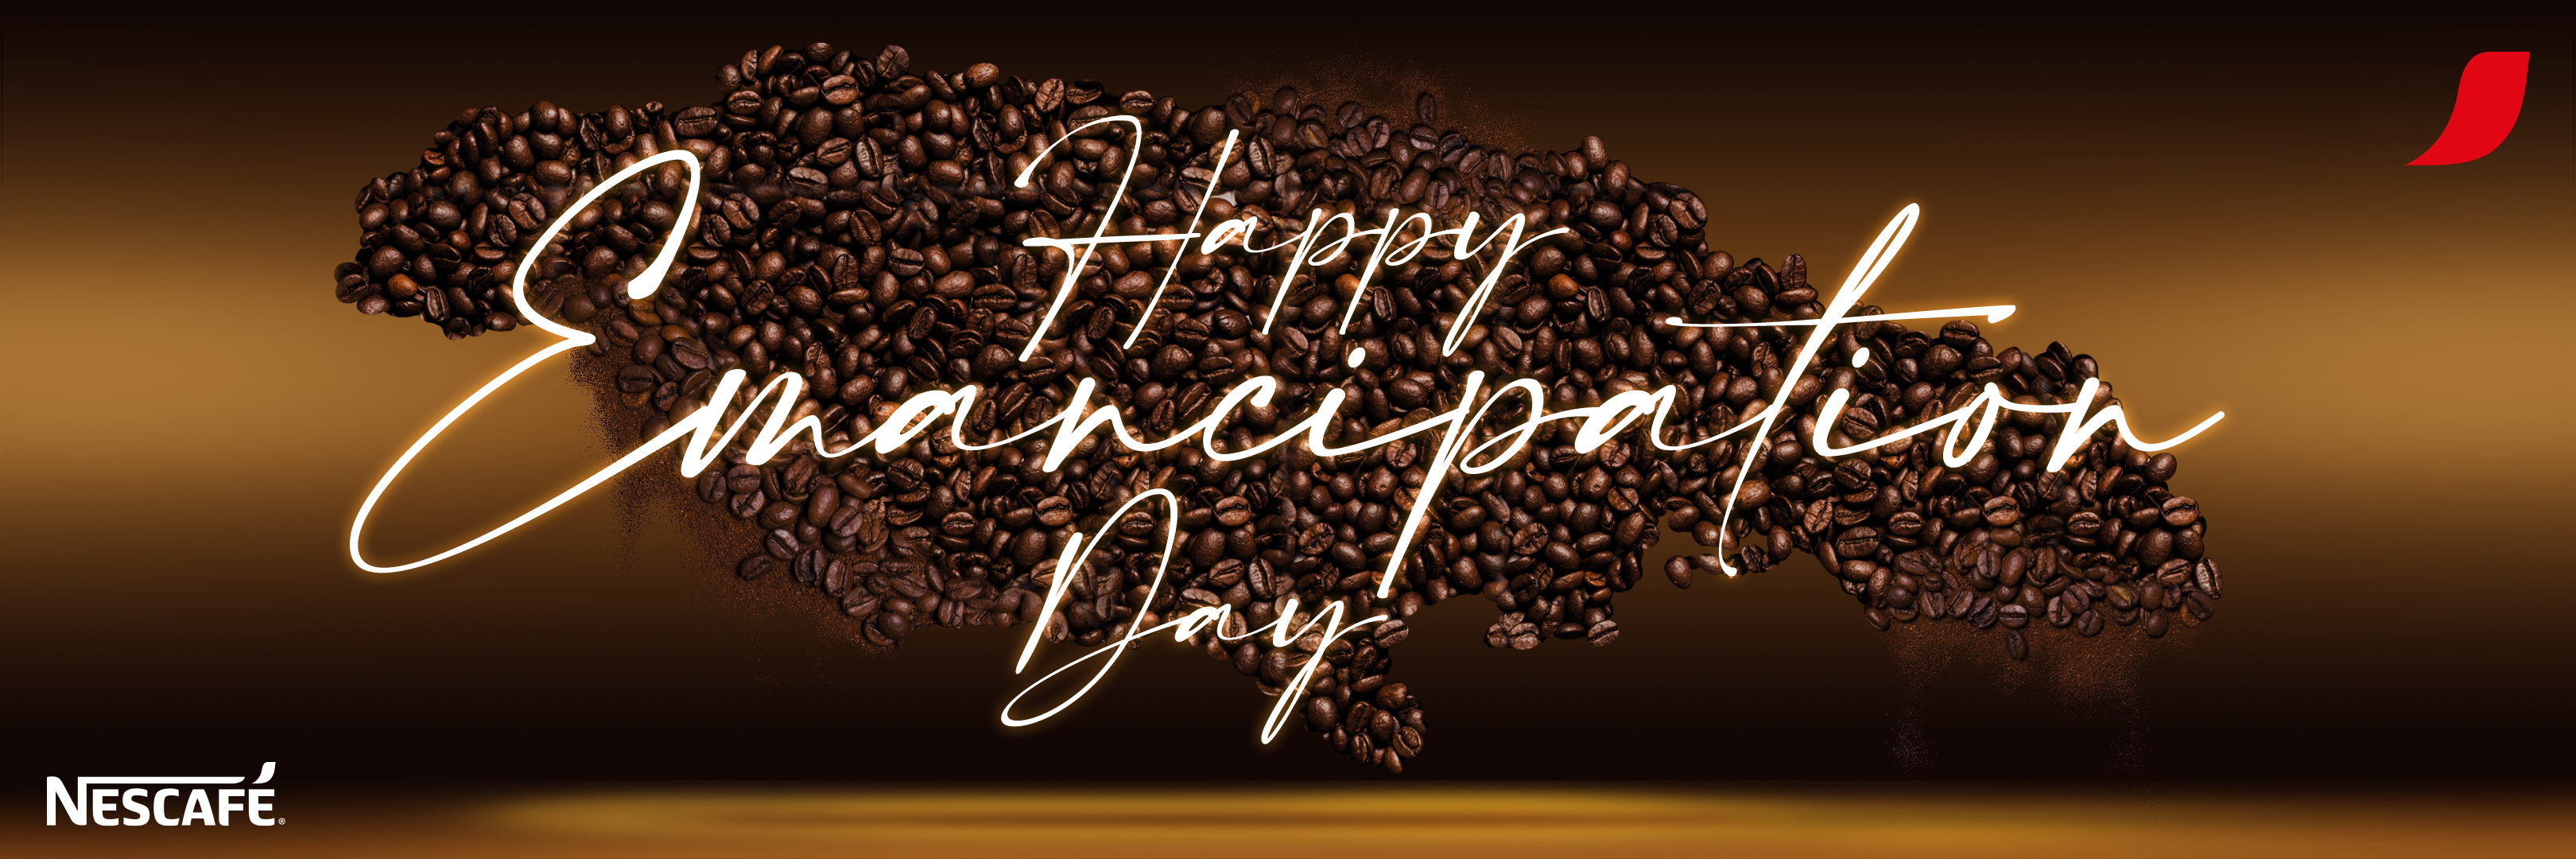 Nescafé Emancipation Day